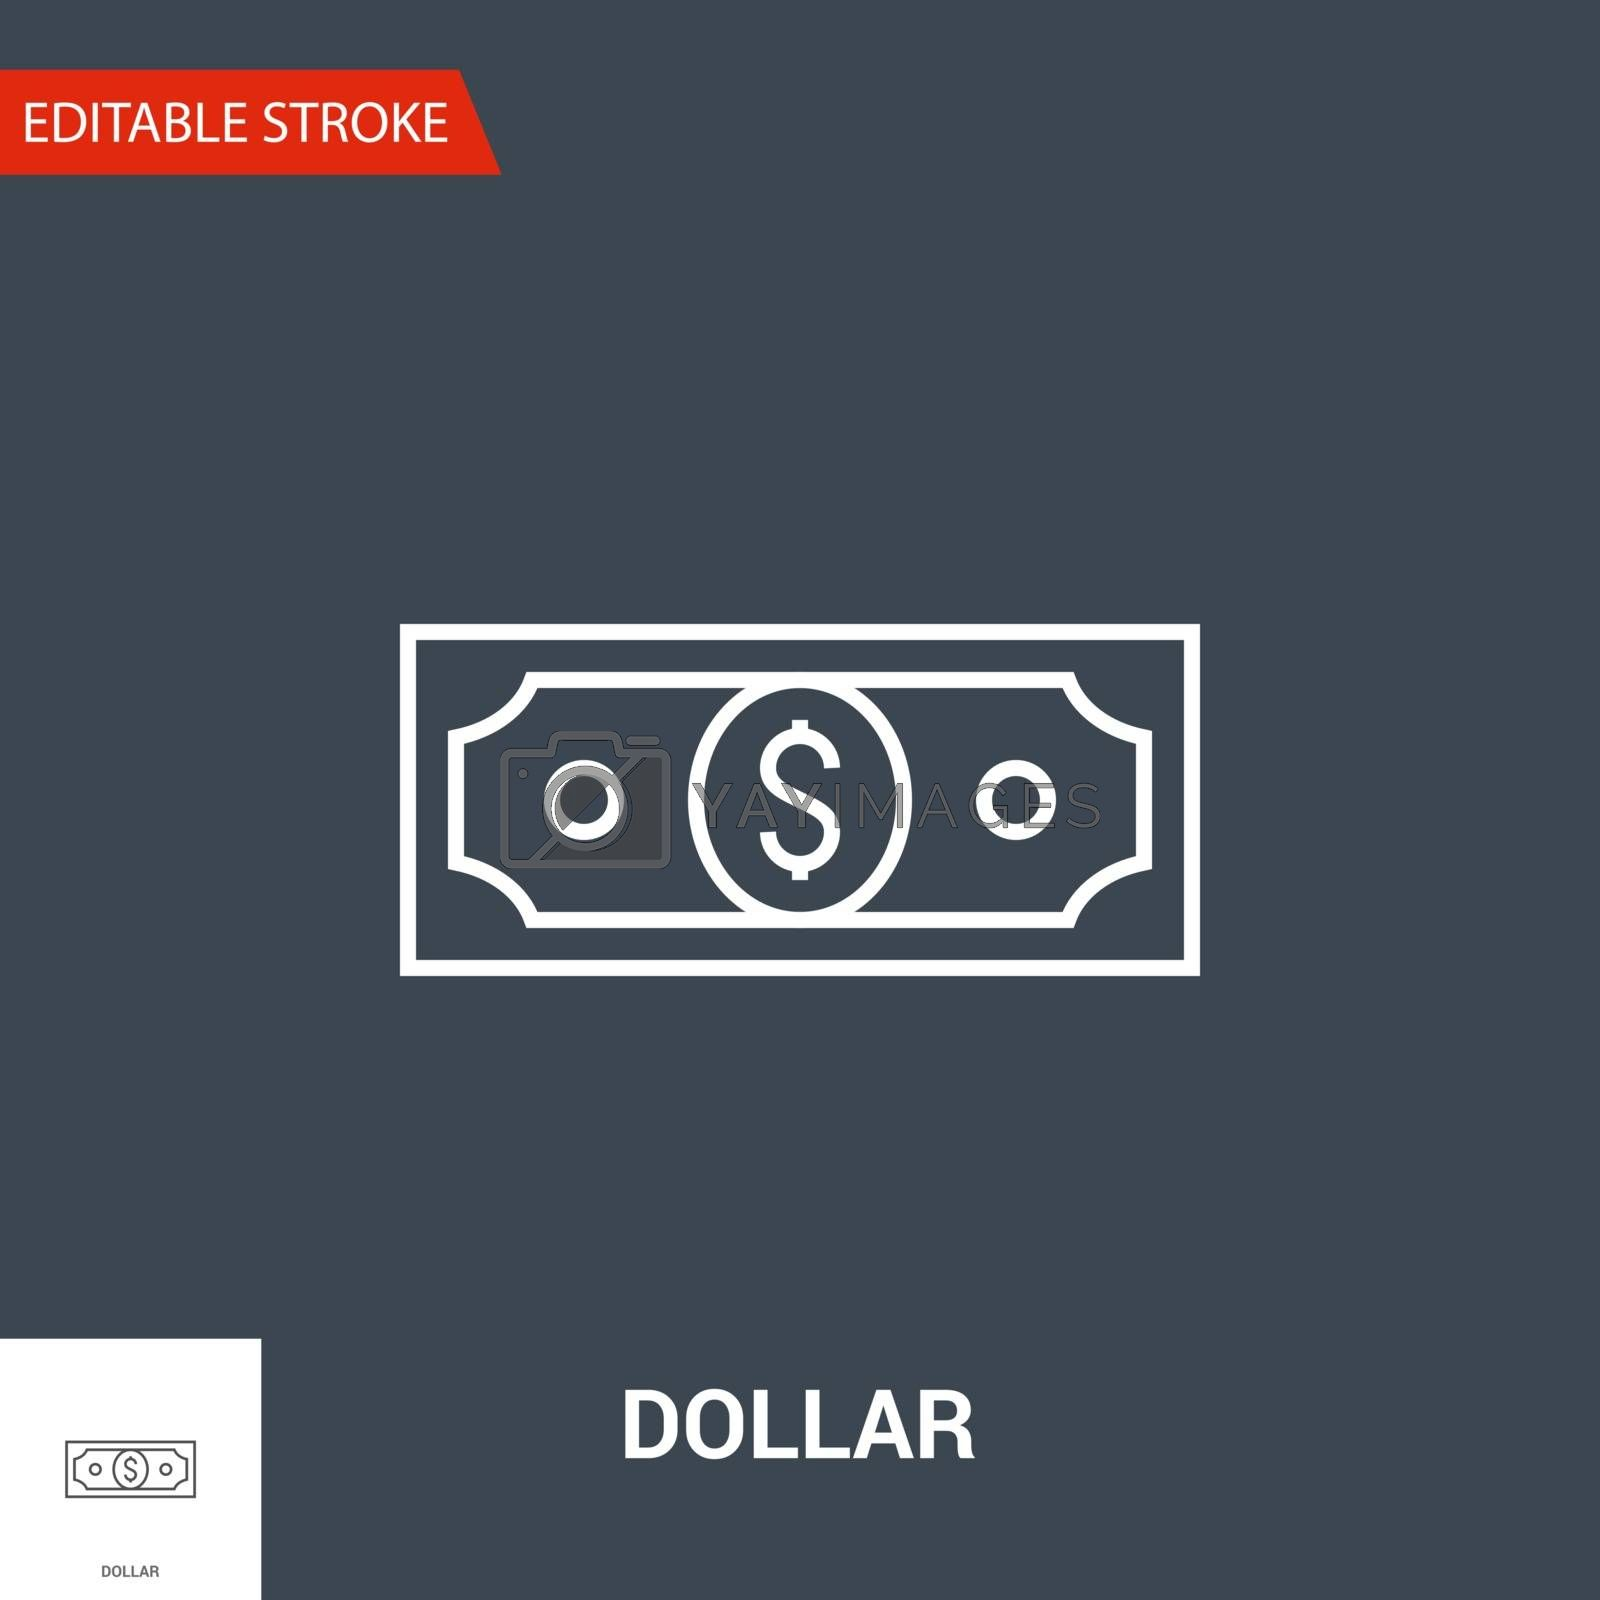 Dollar Related Vector Thin Line Icon. Isolated on Black Background. Editable Stroke. Vector Illustration.